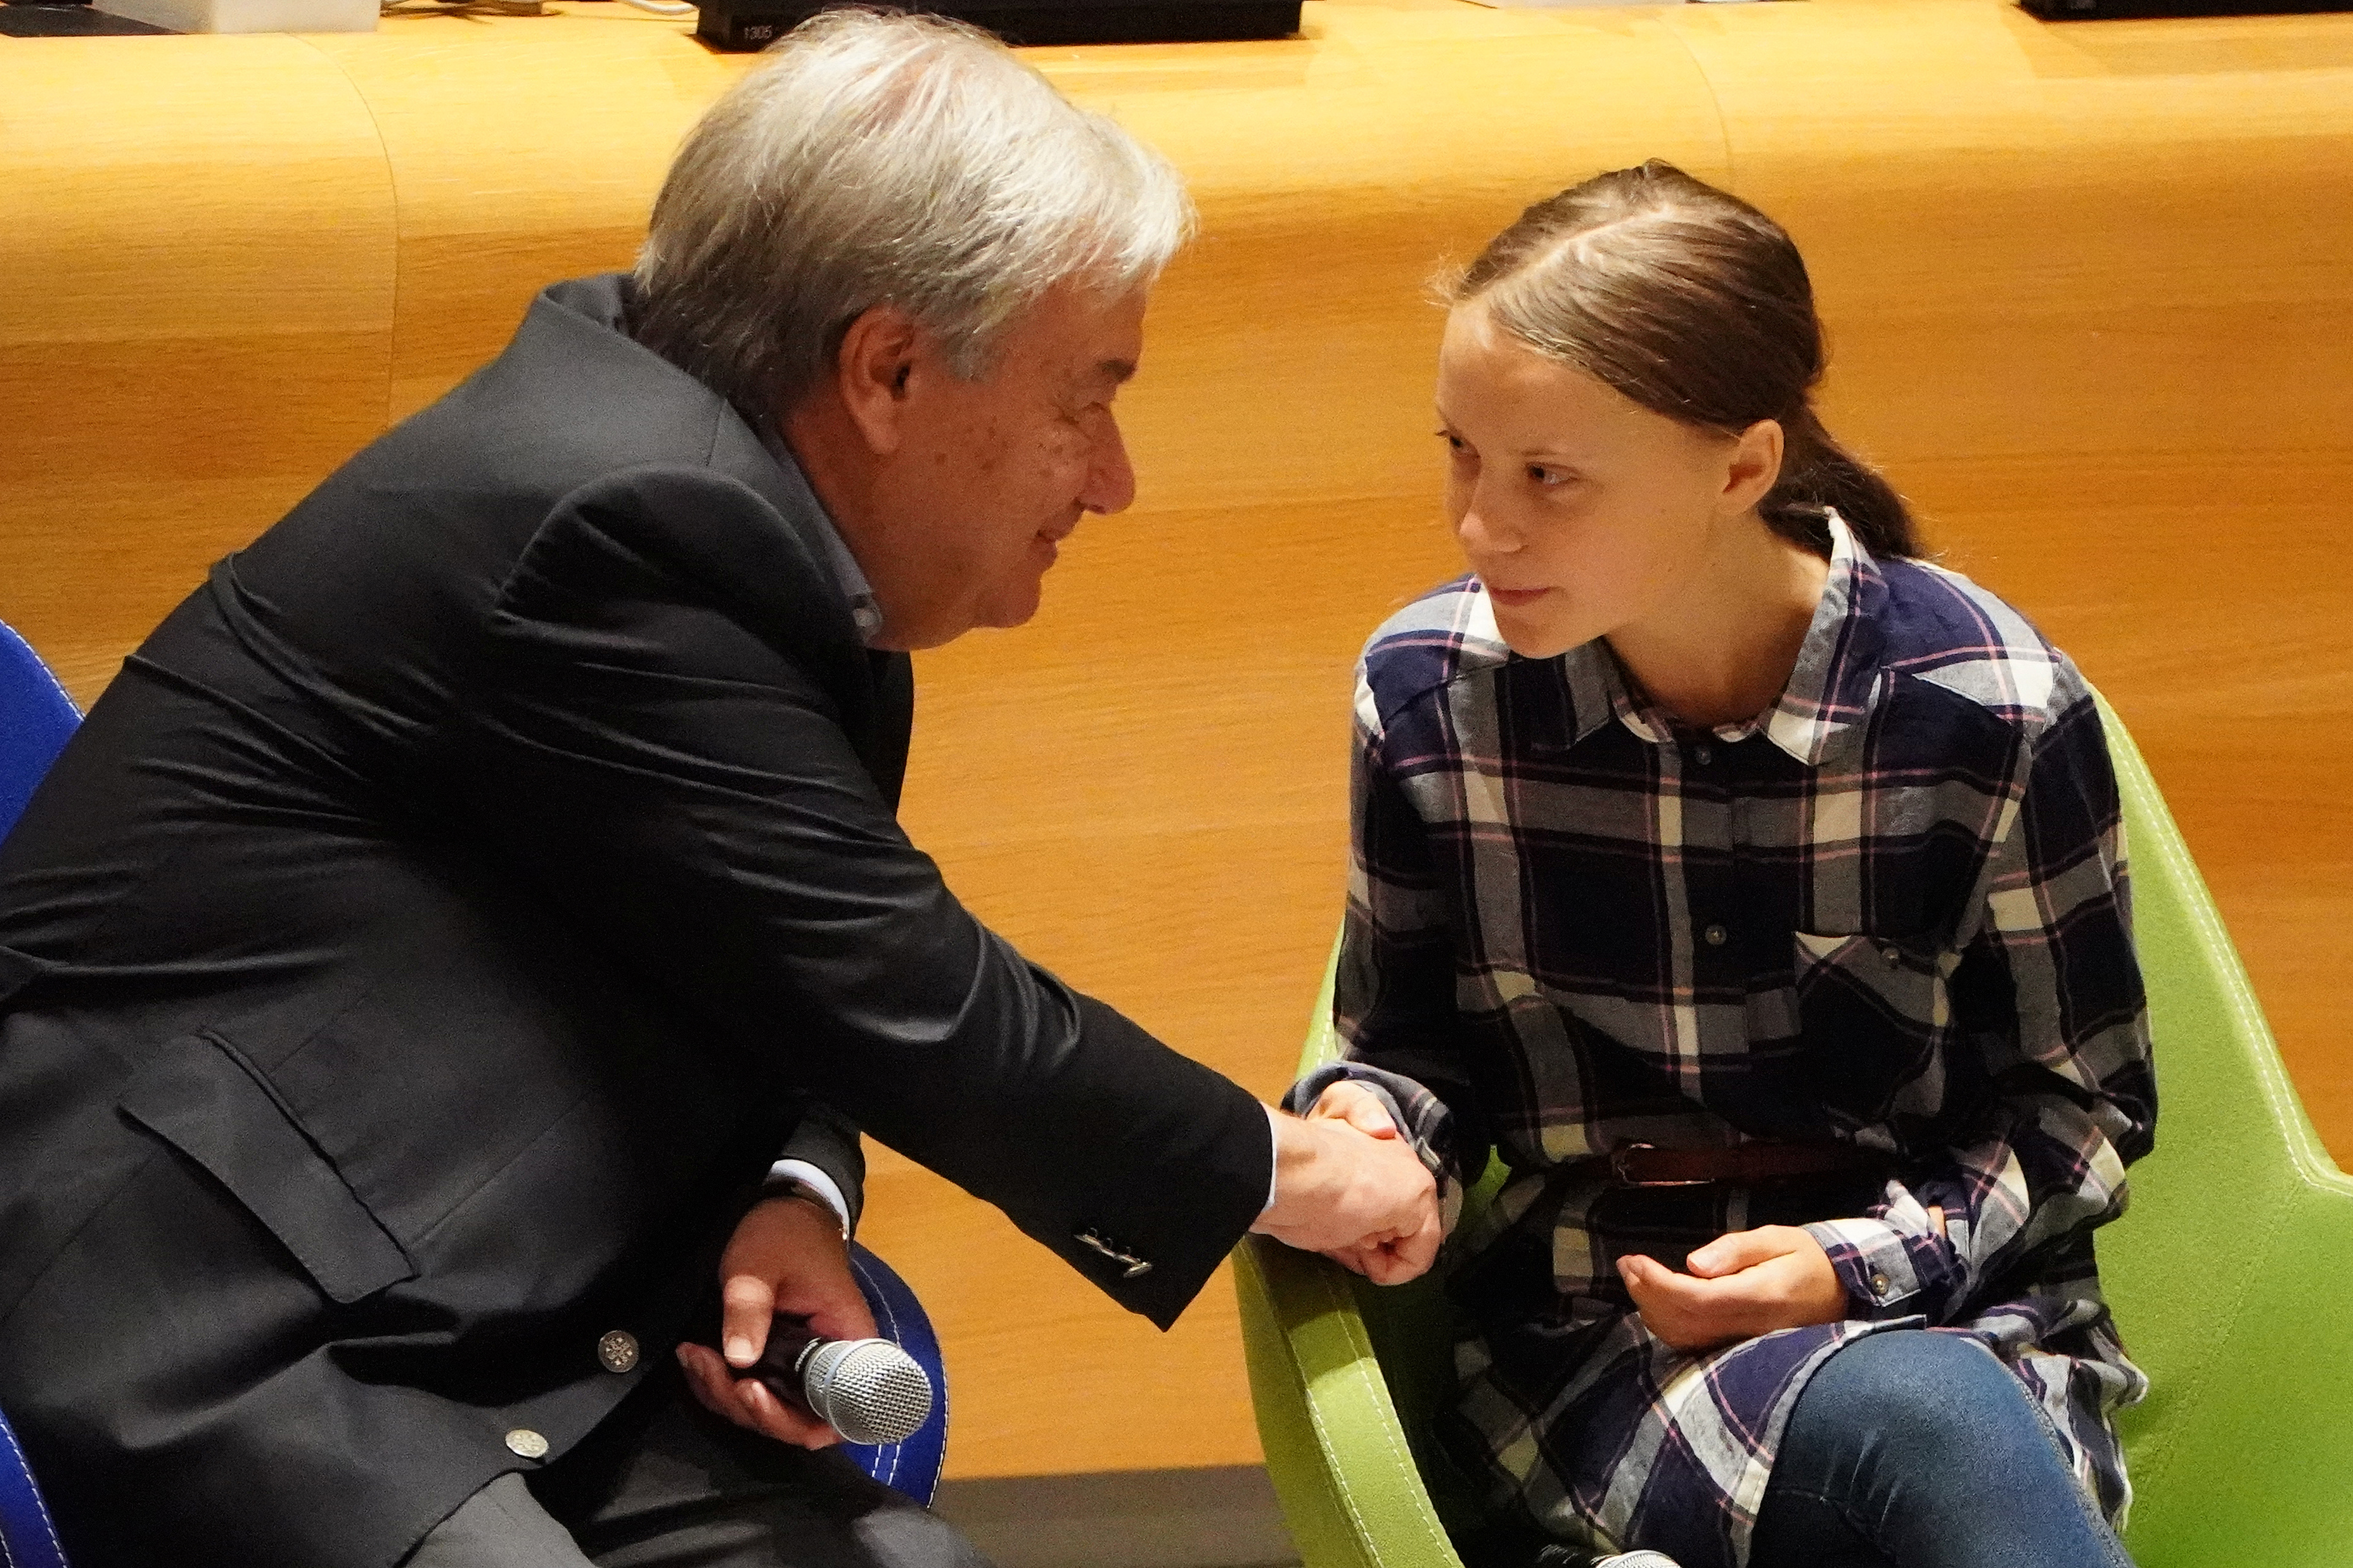 Secretary-General of the United Nations Antonio Guterres shakes hands with Swedish environmental activist Greta Thunberg at the Youth Climate Summit at United Nations Headquarters in the Manhattan borough of New York, New York, U.S., September 21, 2019. REUTERS/Carlo Allegri